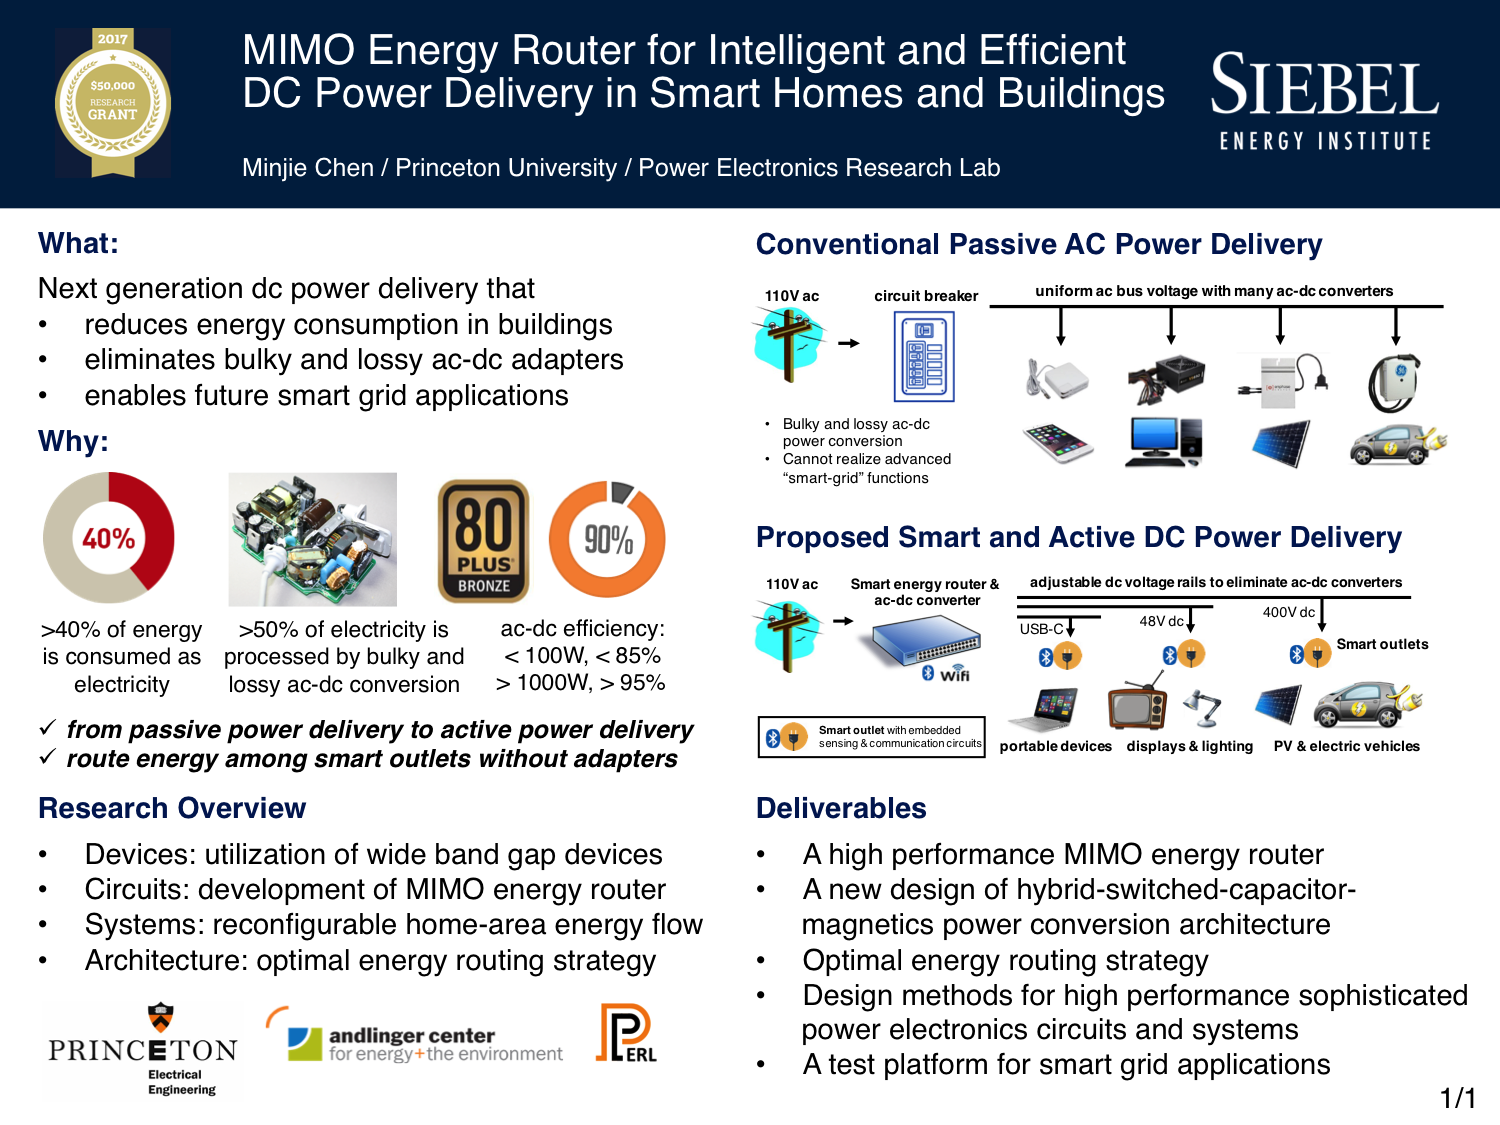 2017 Research Grants Siebel Energy Institute Circuit Design For Sale Power Saver And Electricity Optimizer Buy Residential Commercial Buildings Account More Than 40 Of Us Consumption 30 Carbon Emissions The Traditional Ac Delivery